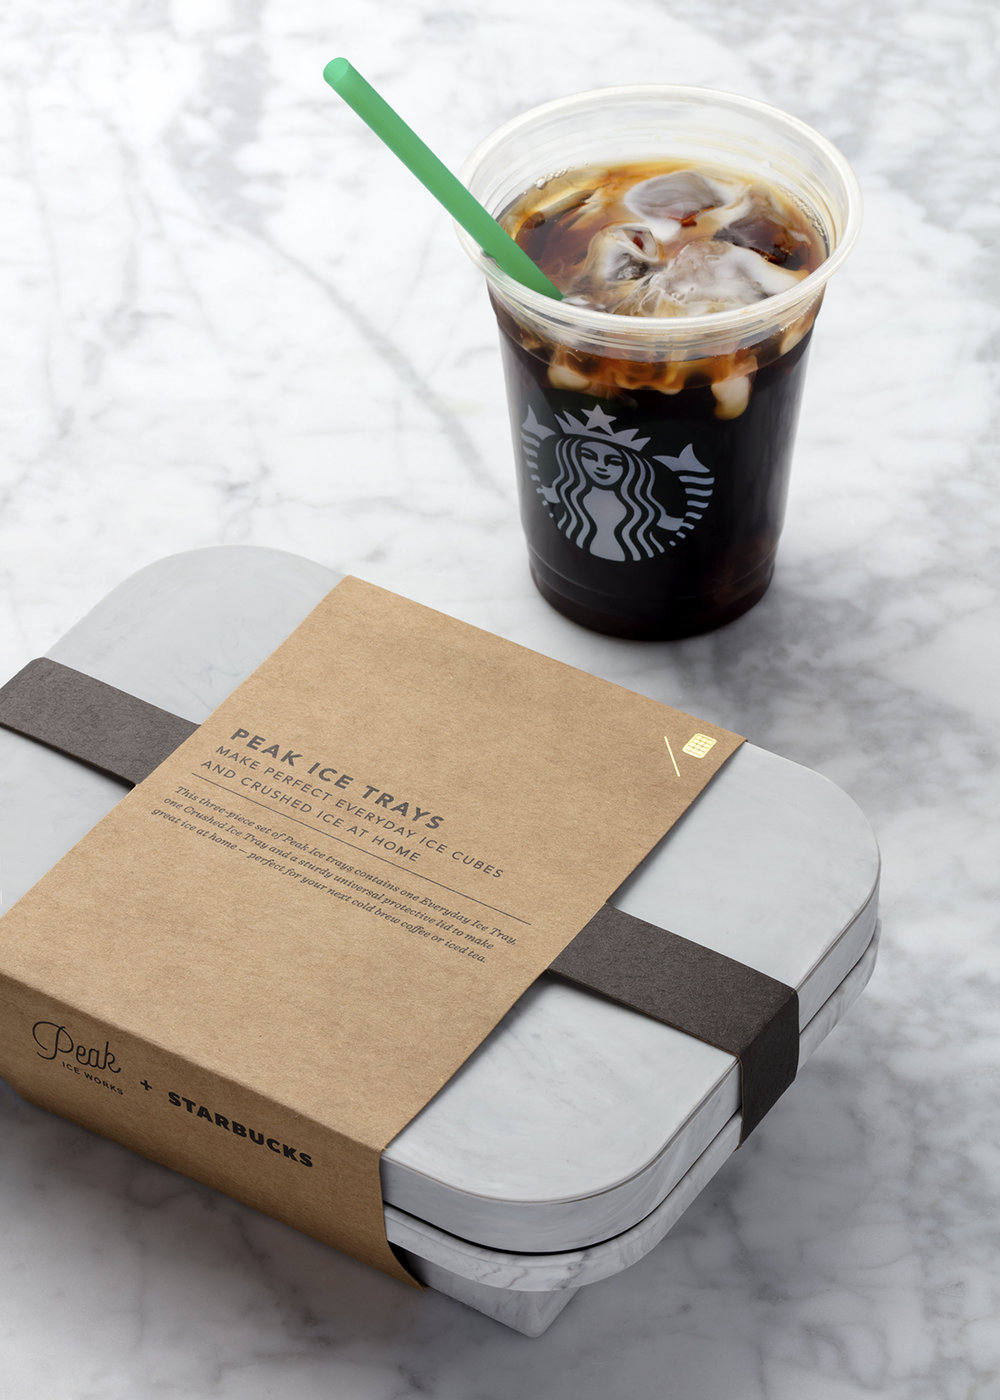 wp_peak_starbucks_packaging